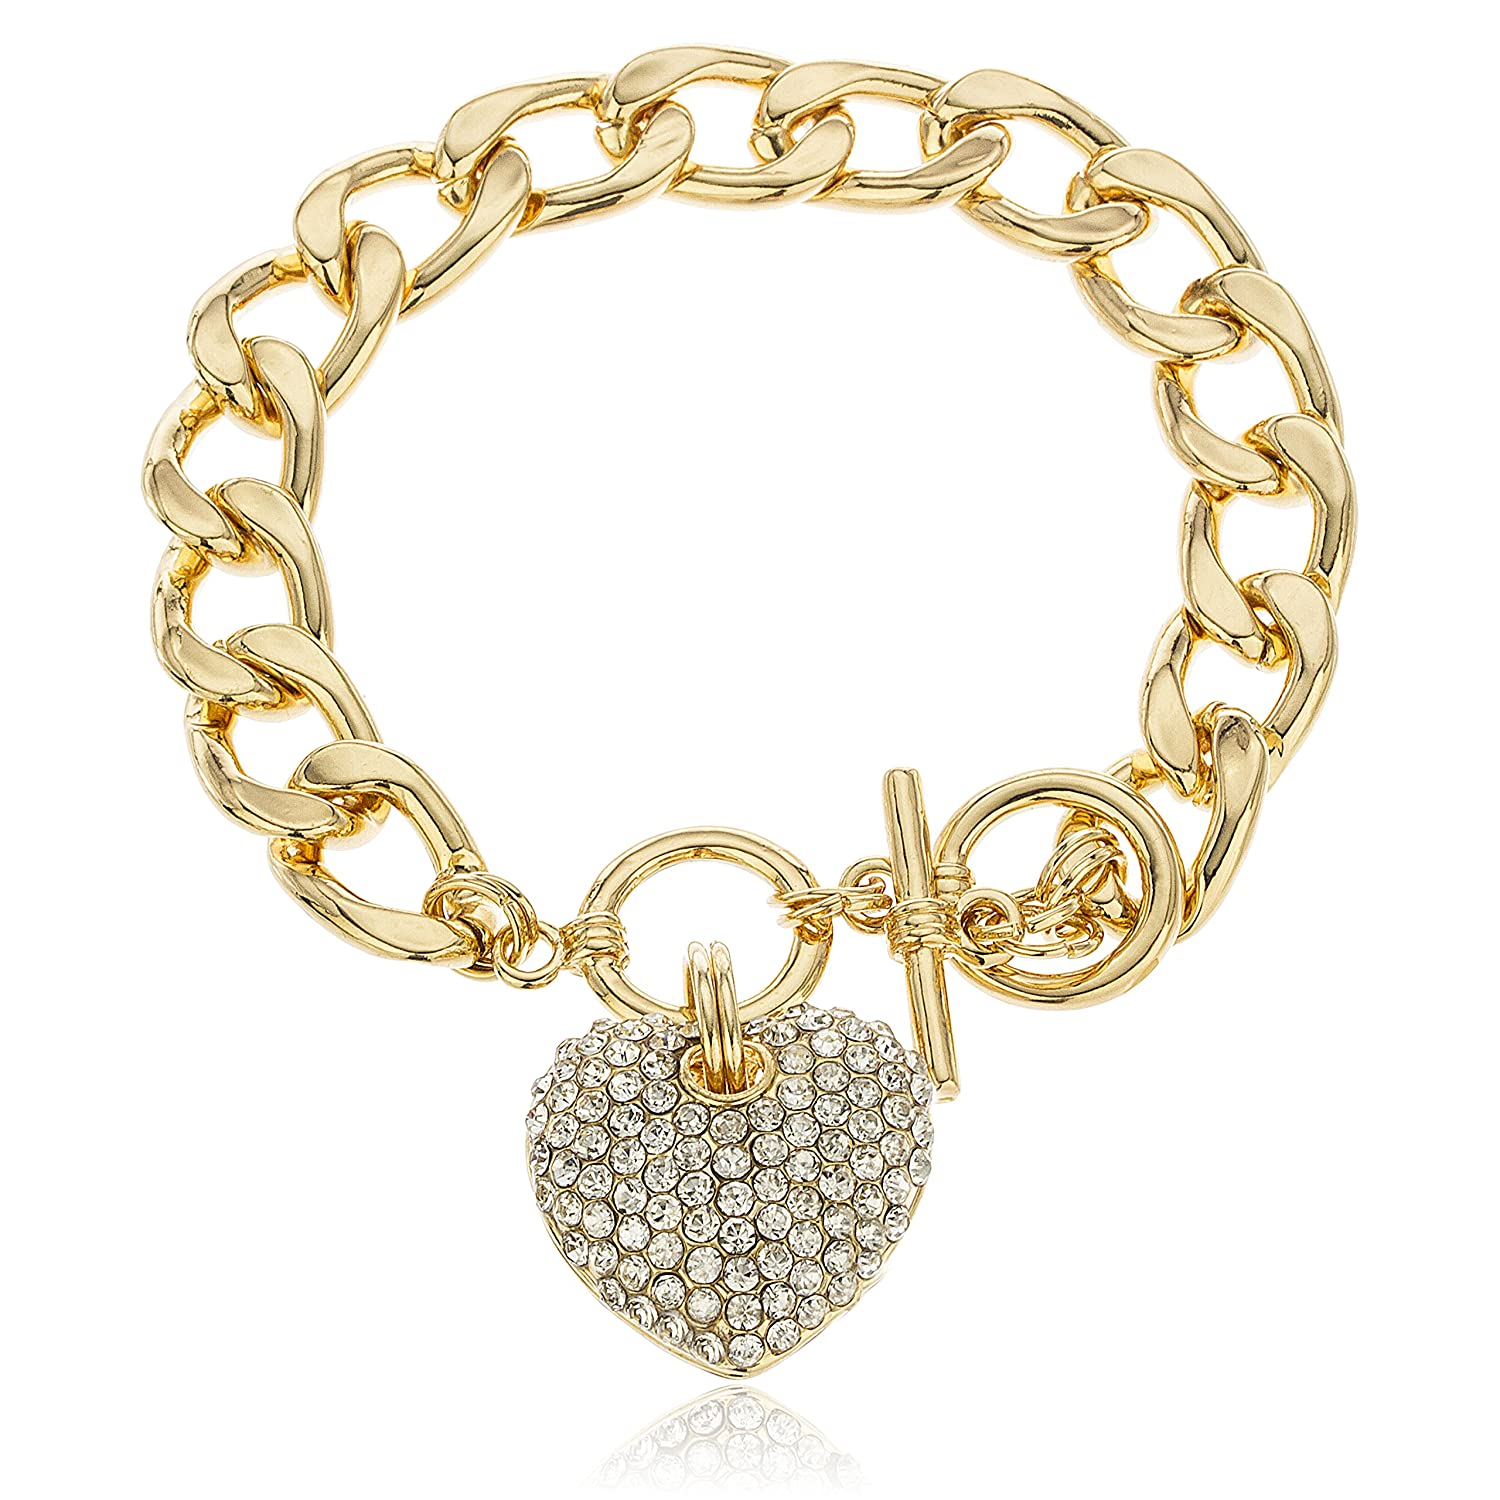 Goldtone with Clear Iced Out Heart 8.5 Inch Cuban Link 12mm Toggle Bracelet JOTW HB1232/S-1660